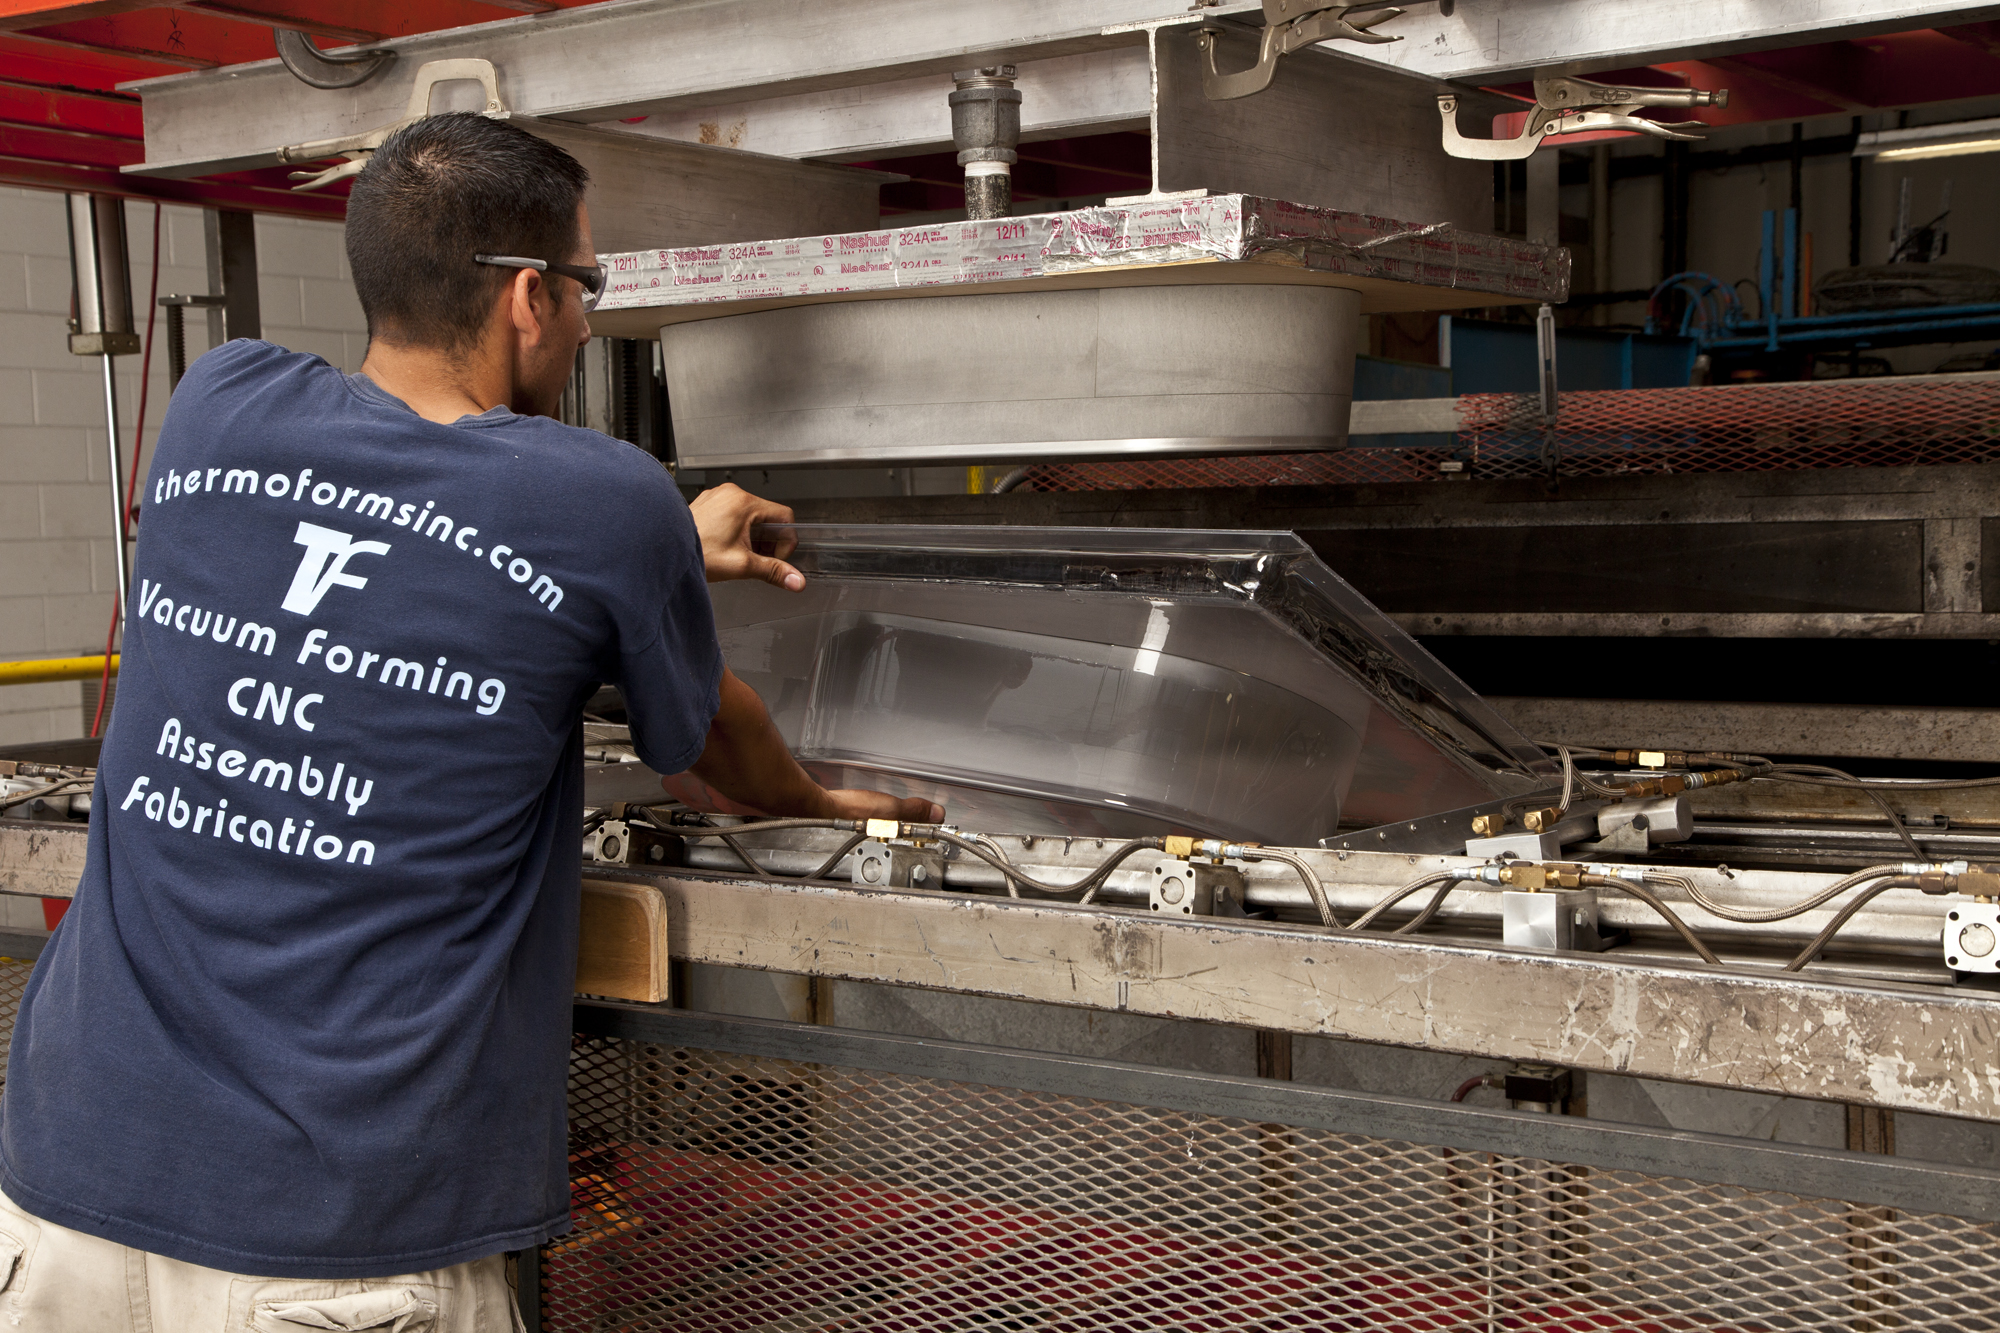 thermoforming-homepage-raw.jpg